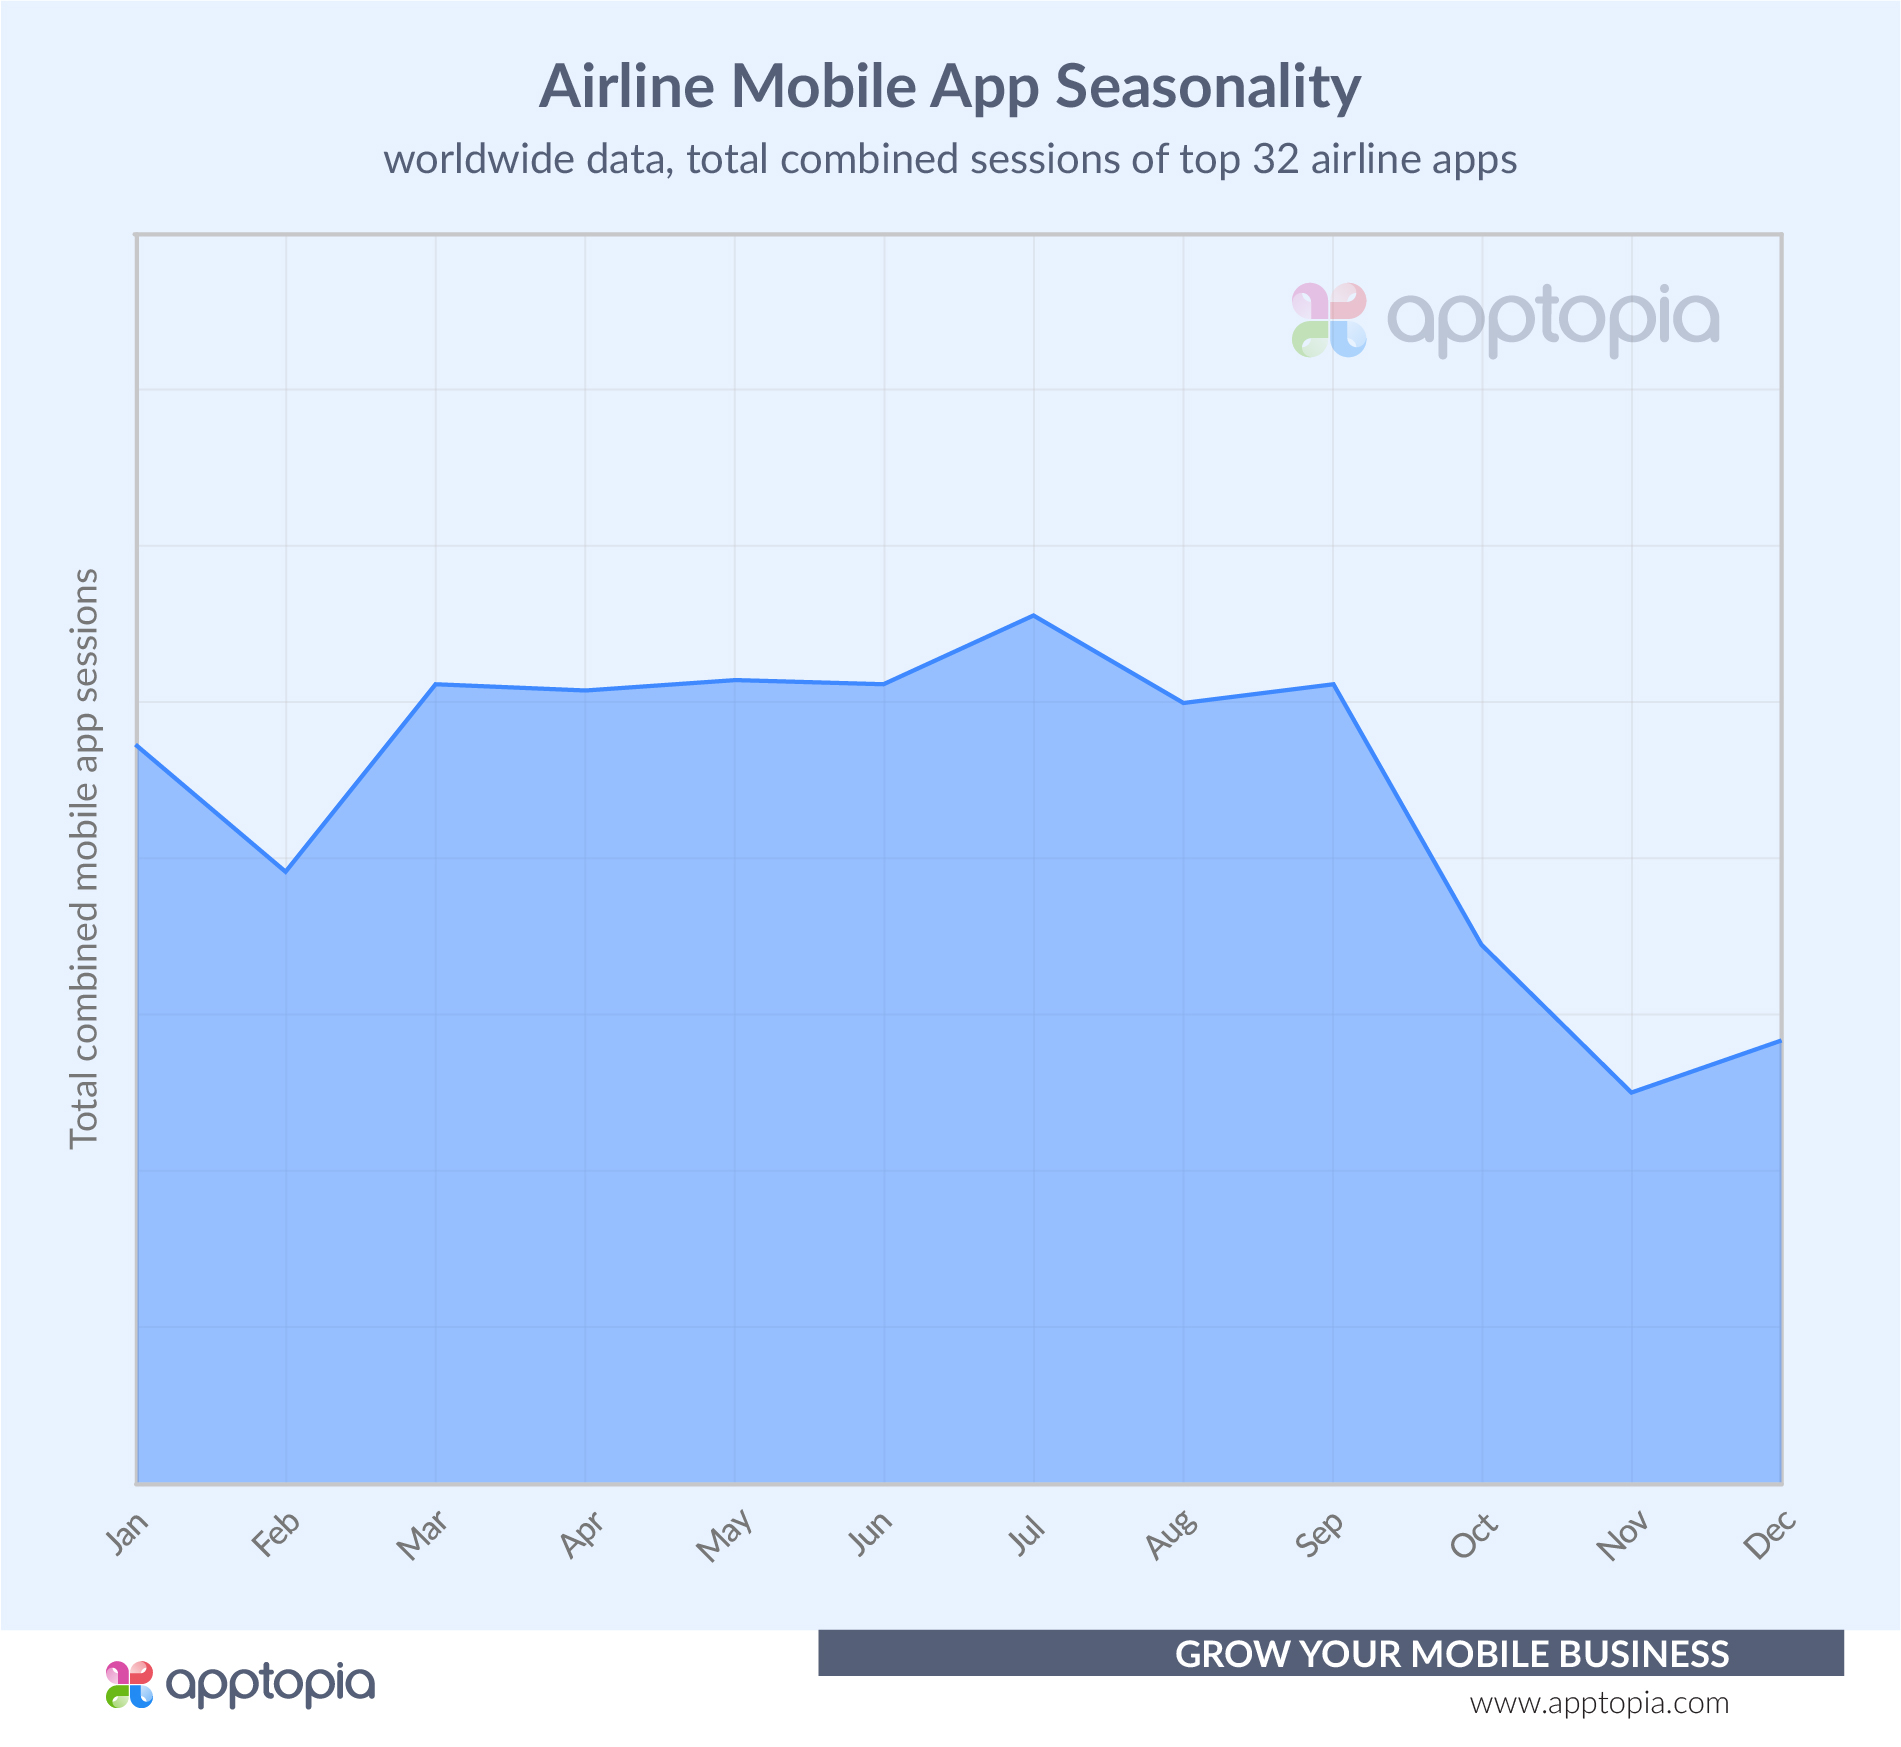 Airline Session Seasonality